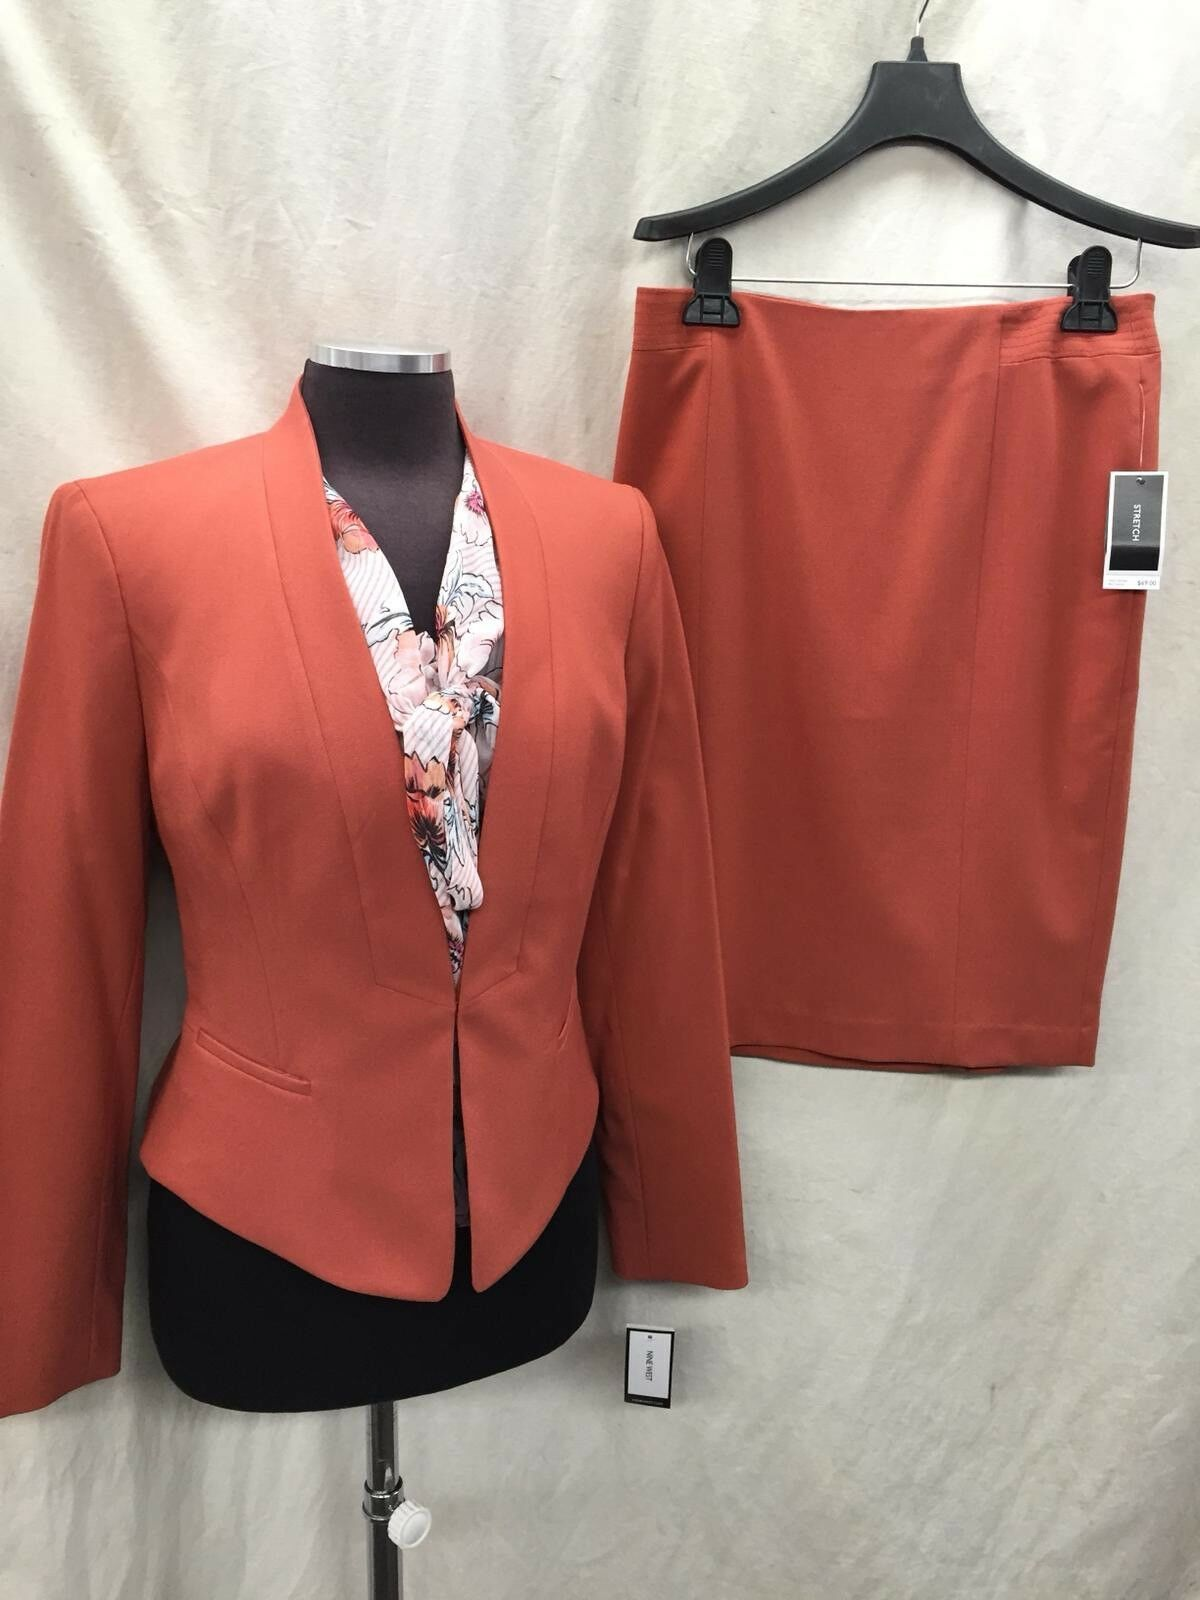 NINE WEST SKIRT SUIT SIZE 6 NEW WITH TAG RETAIL LINED TANK NOT INCLUDED